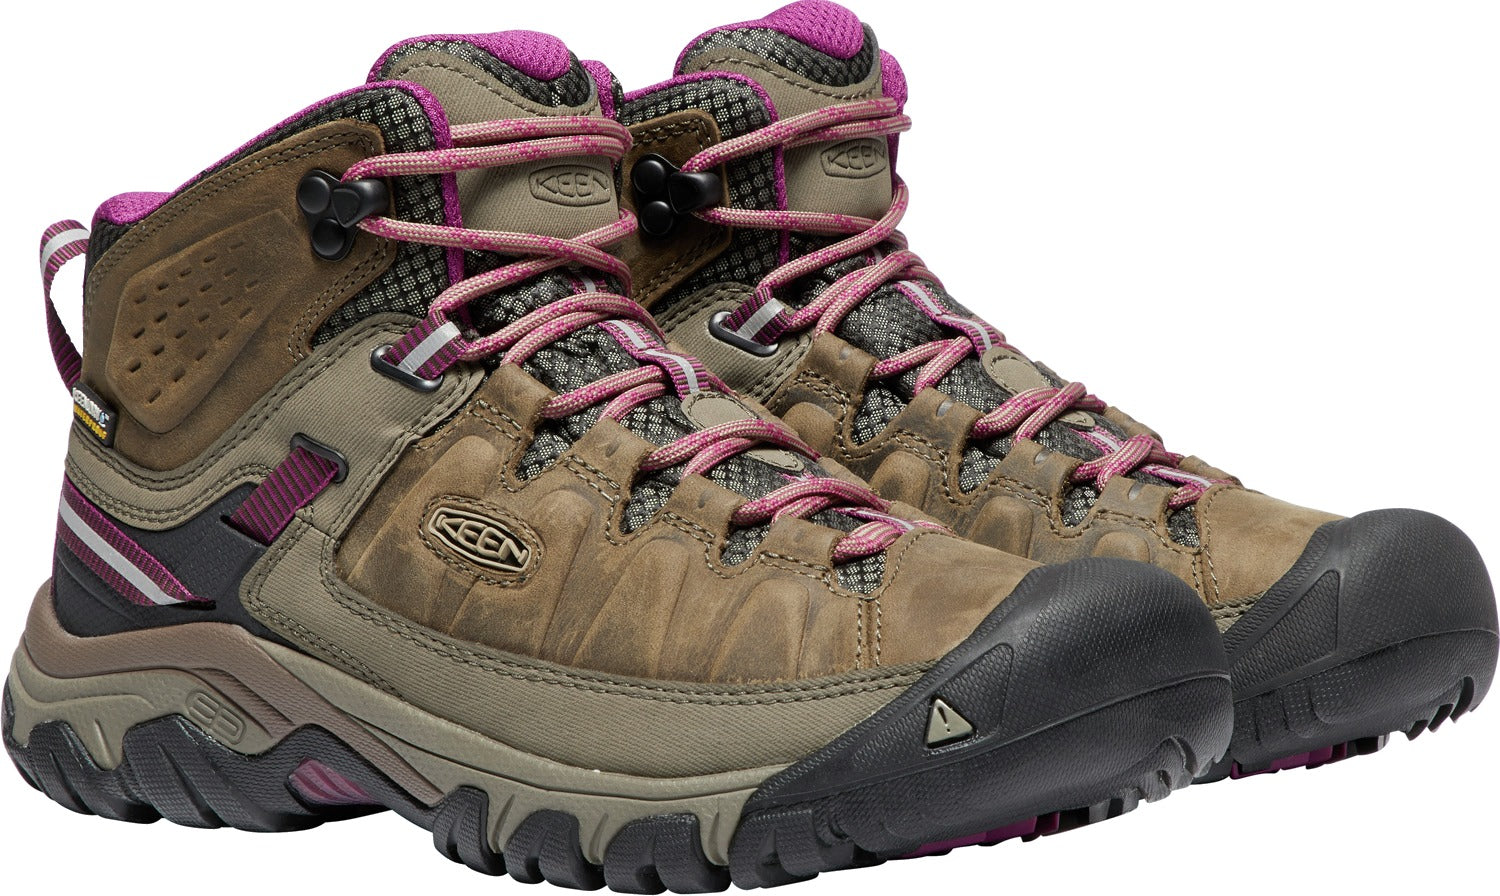 'Keen' Women's Targhee III Mid WP - Boysenberry